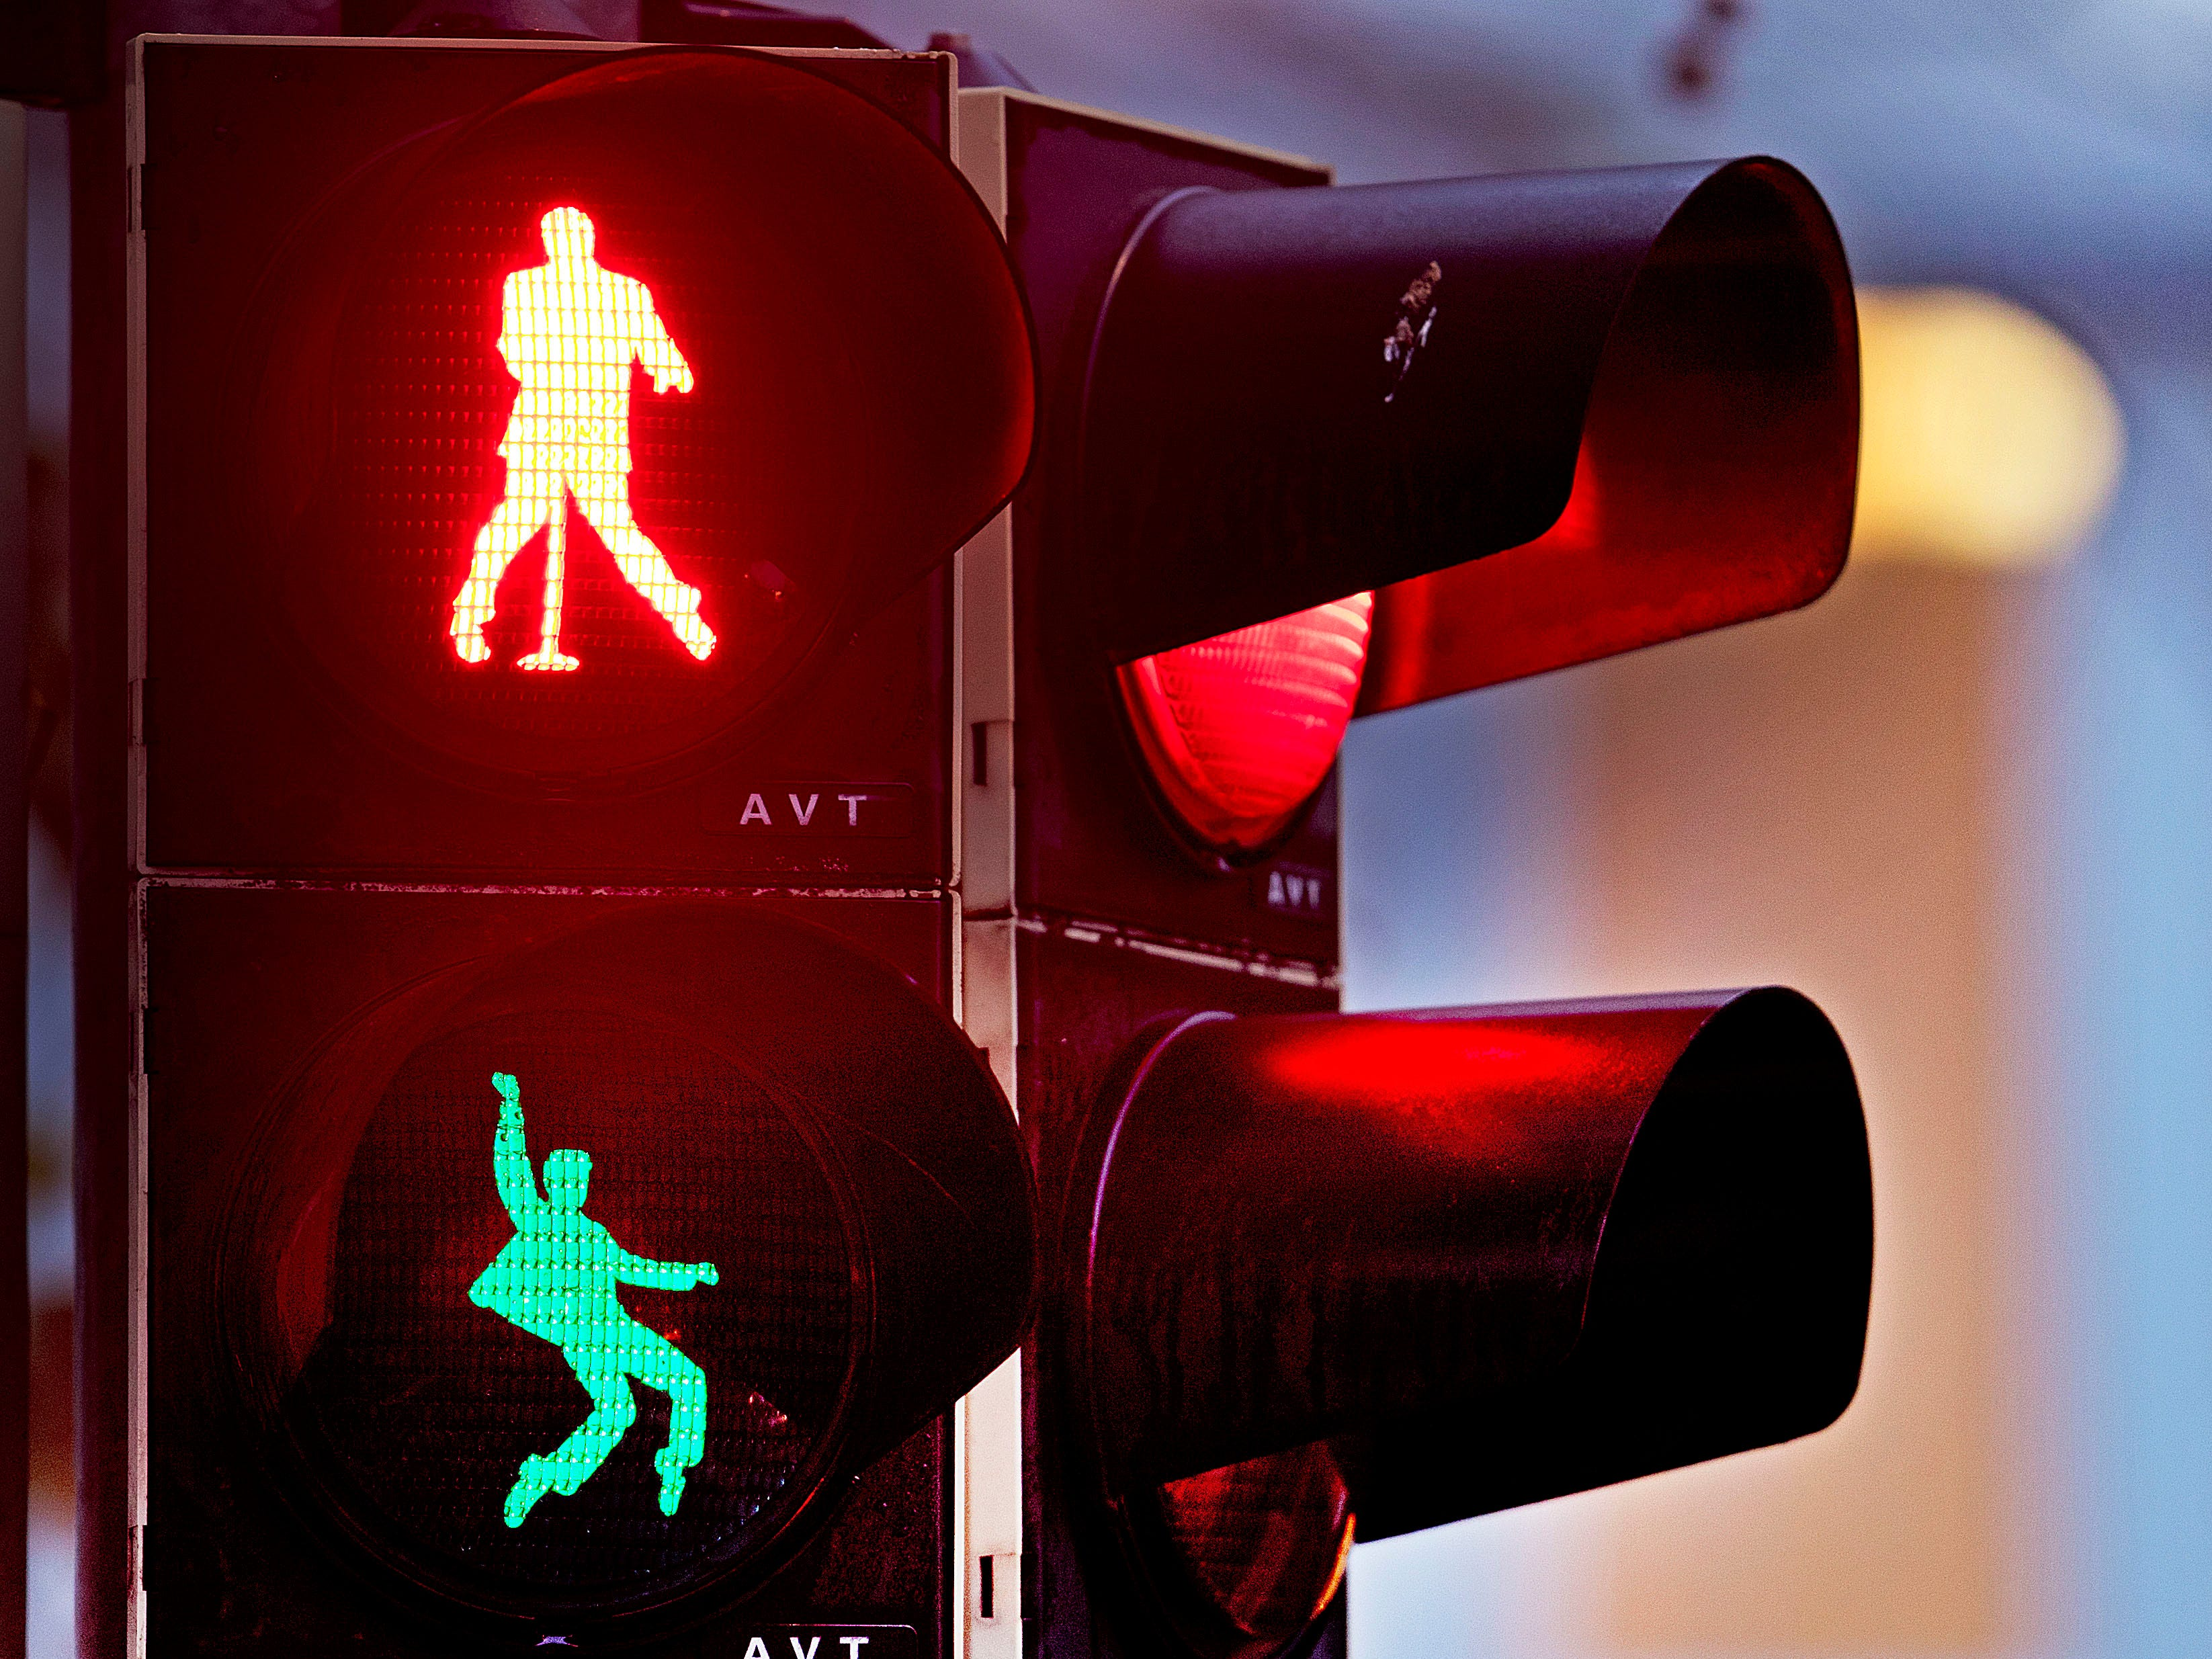 Walking figures depicting rock 'n' roll legend Elvis Presley appear on a traffic light switching from green to red in Friedberg near Frankfurt, Germany, Thursday, Dec. 6, 2018. Presley served in Friedberg from October 1958 to March 1960 as a soldier in the U.S. Armed Forces.